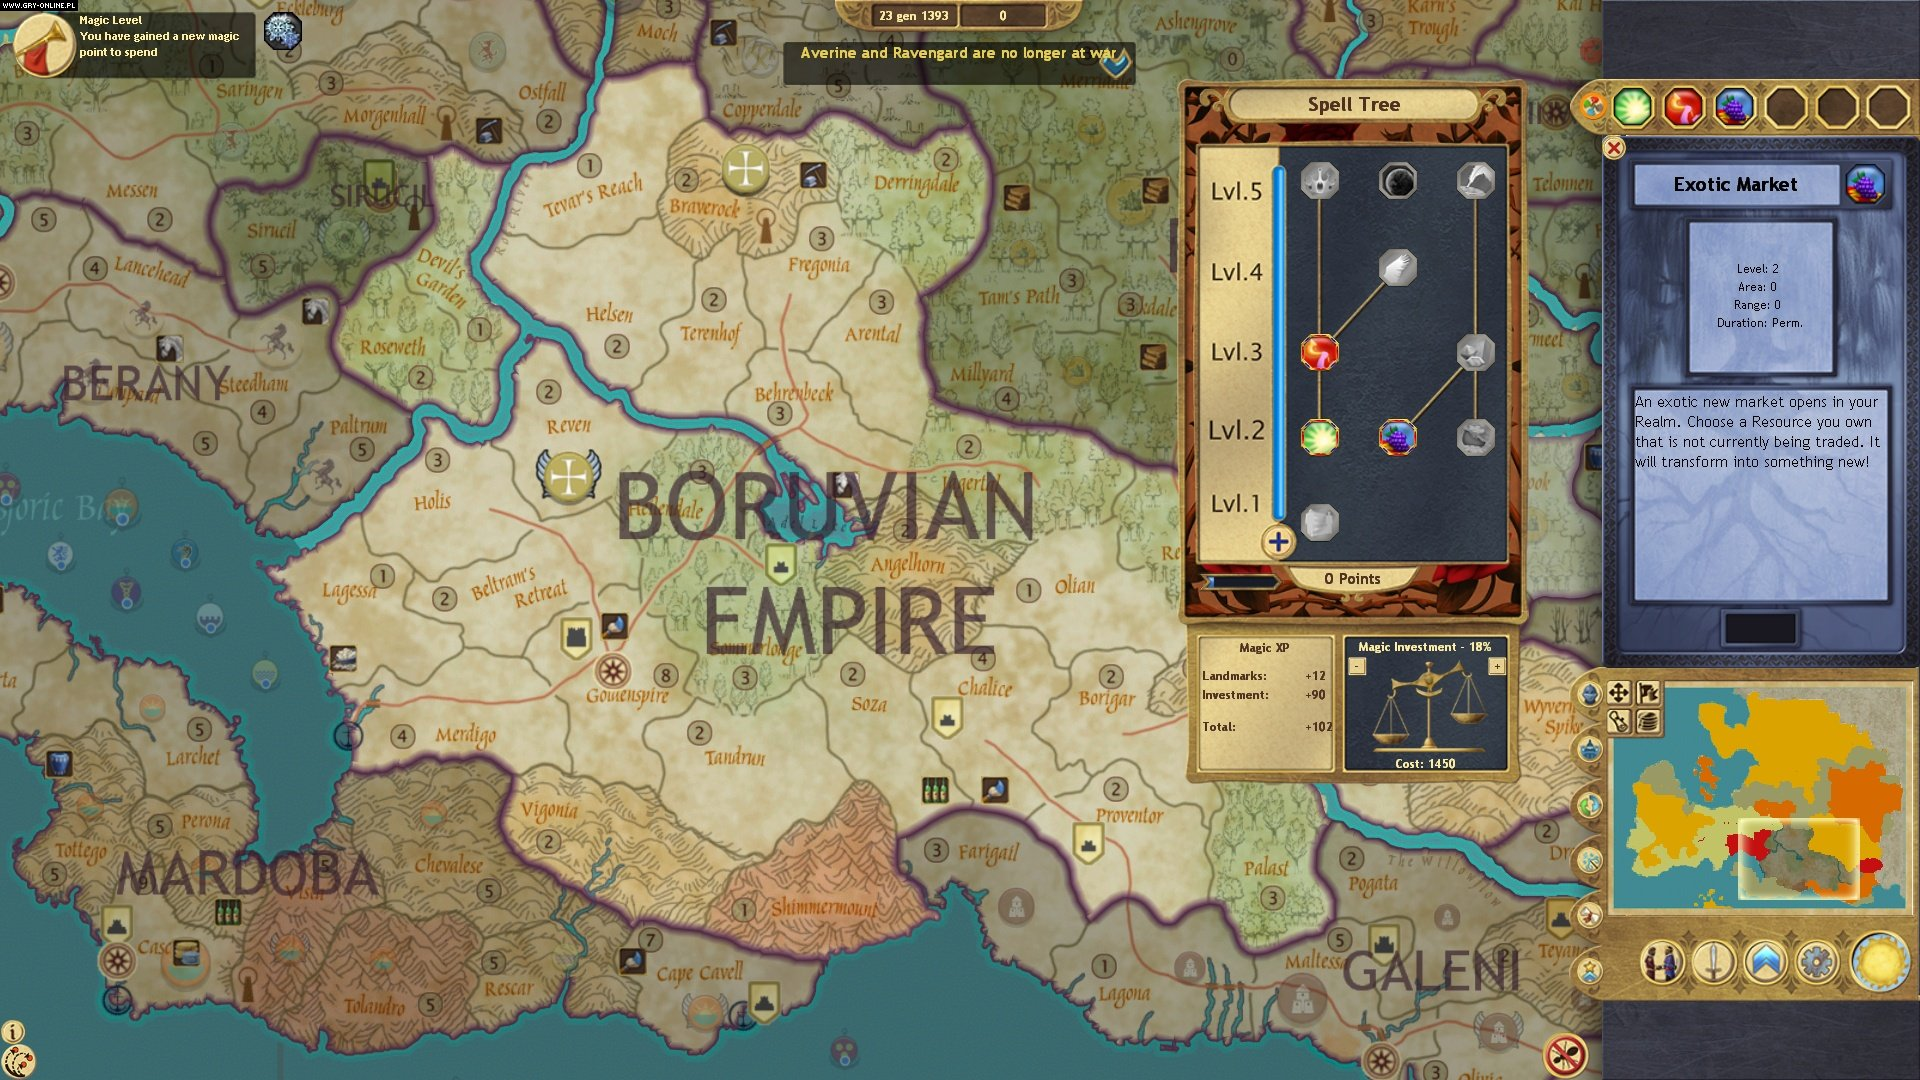 Sovereignty: Crown of Kings PC Games Image 16/16, The Lordz Games Studio, Slitherine